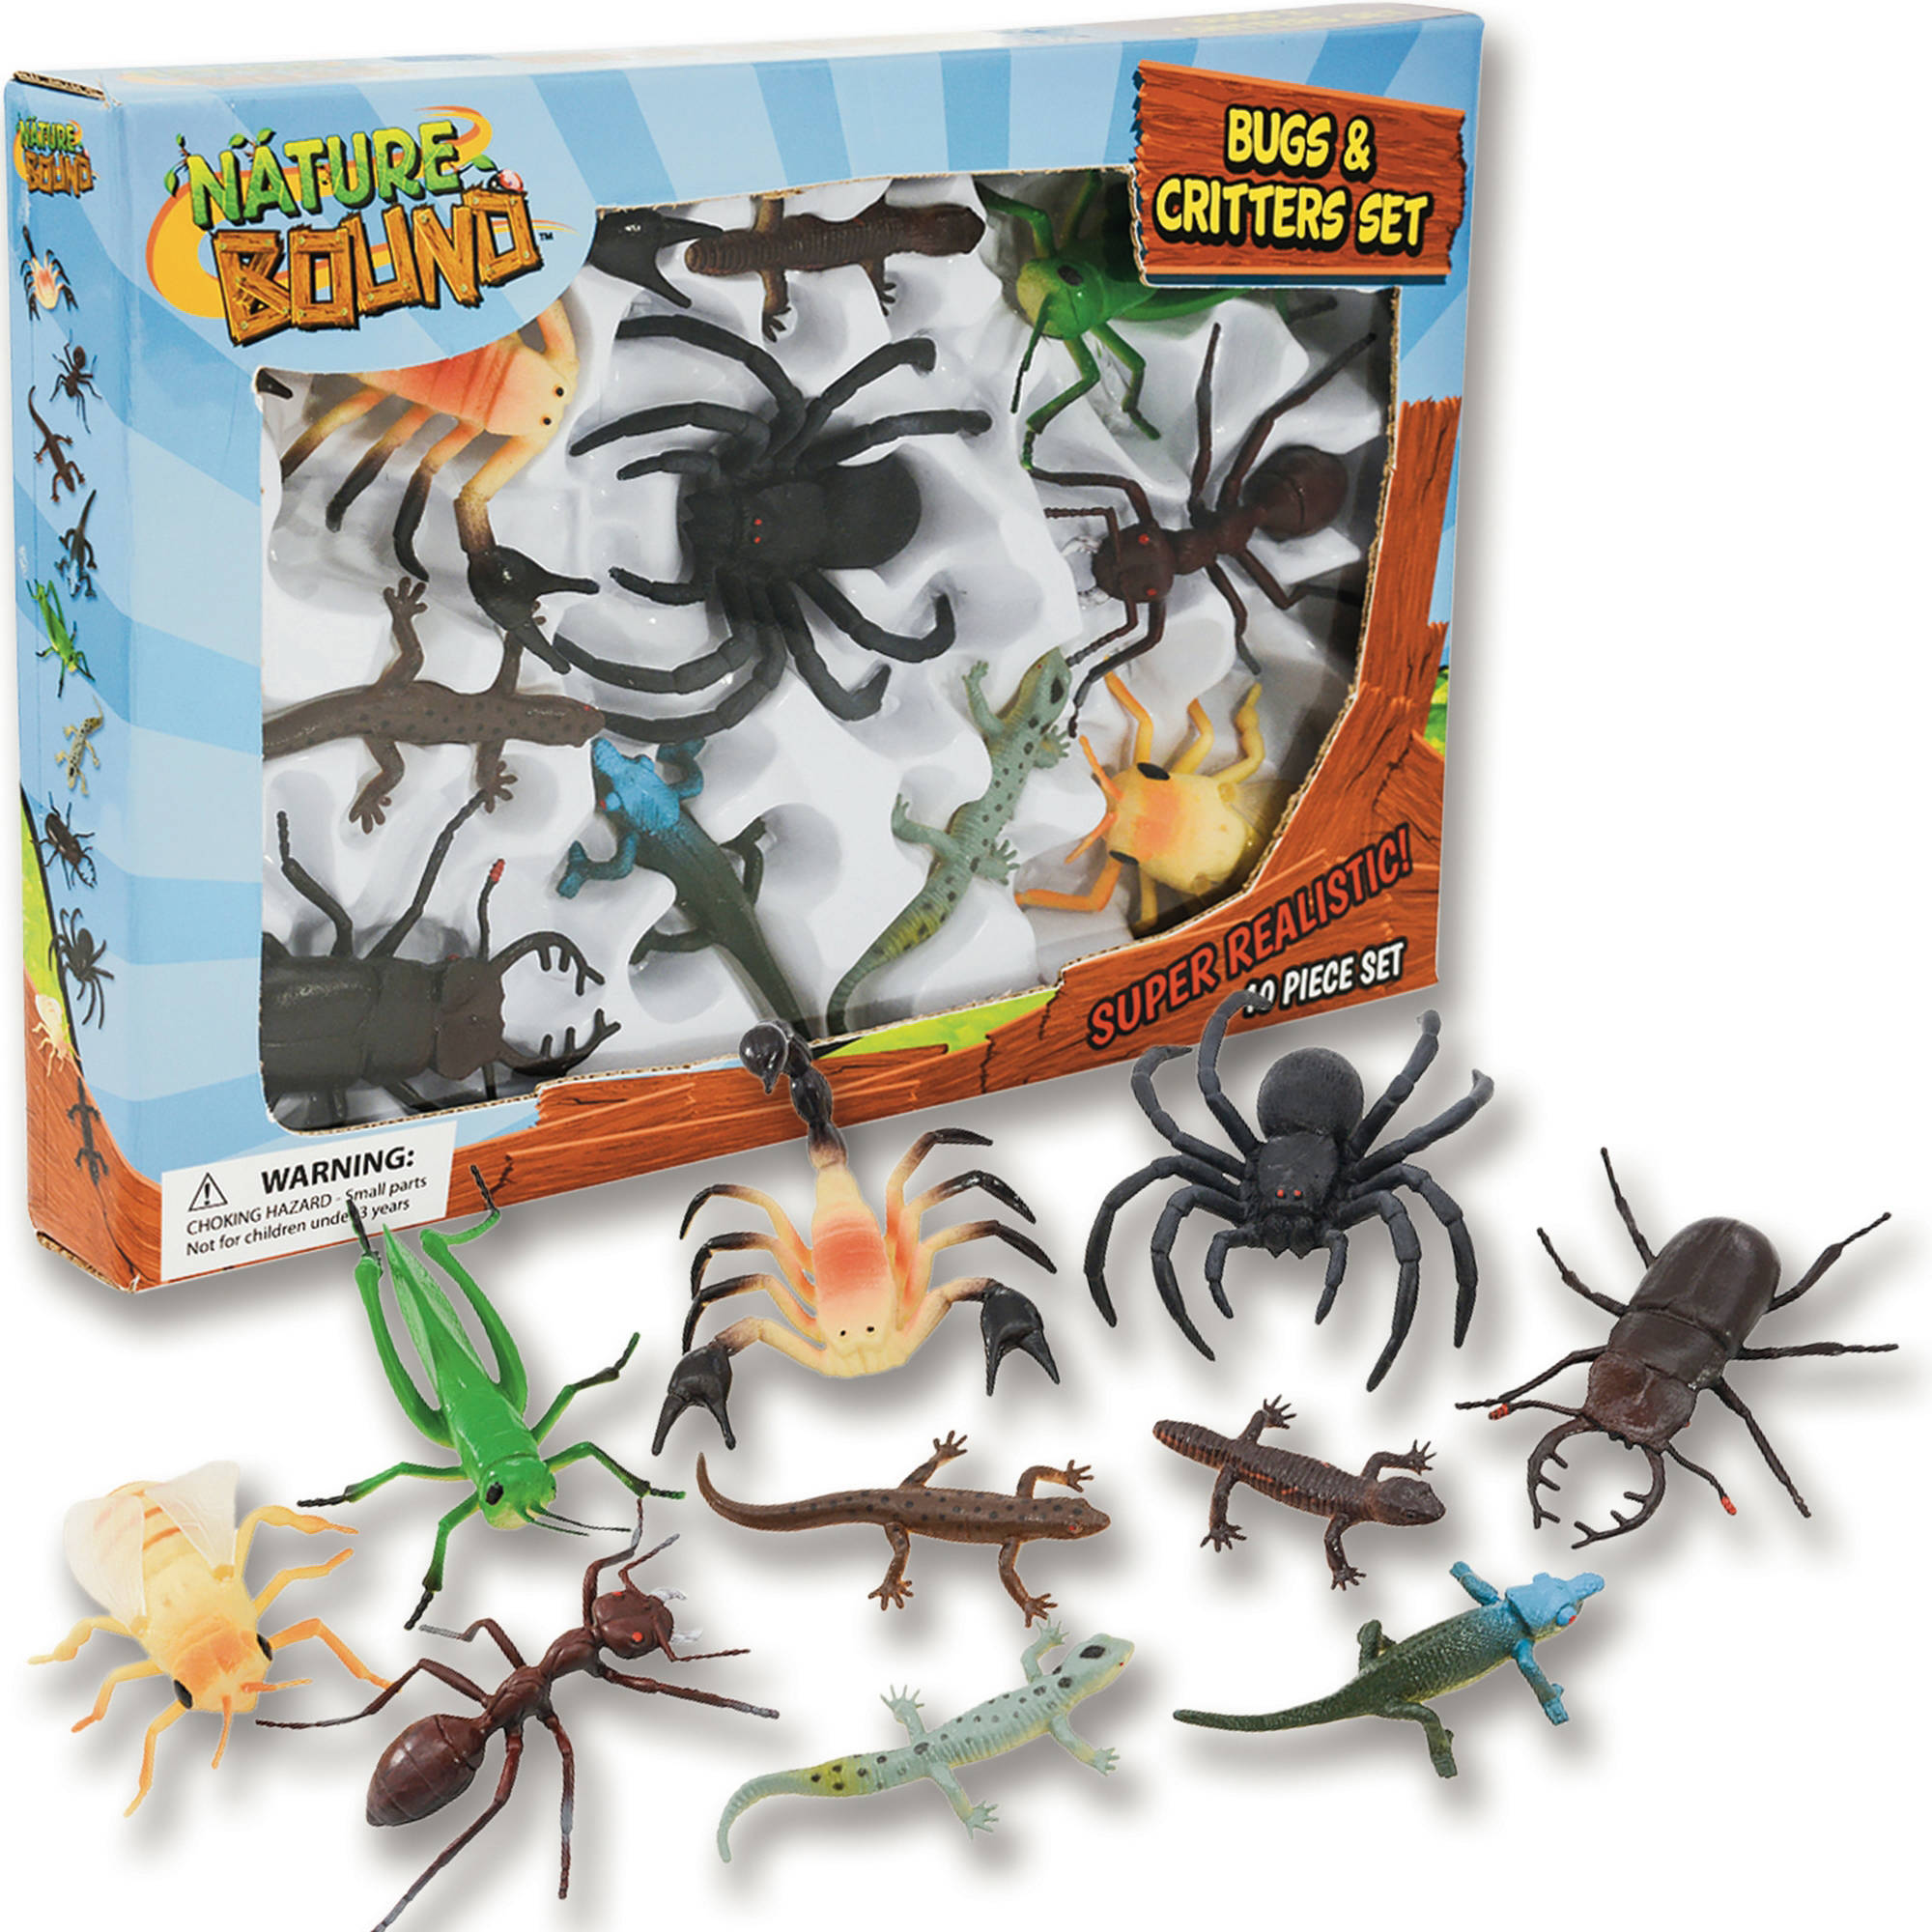 Nature Bound Bug and Critter Set, 10pc